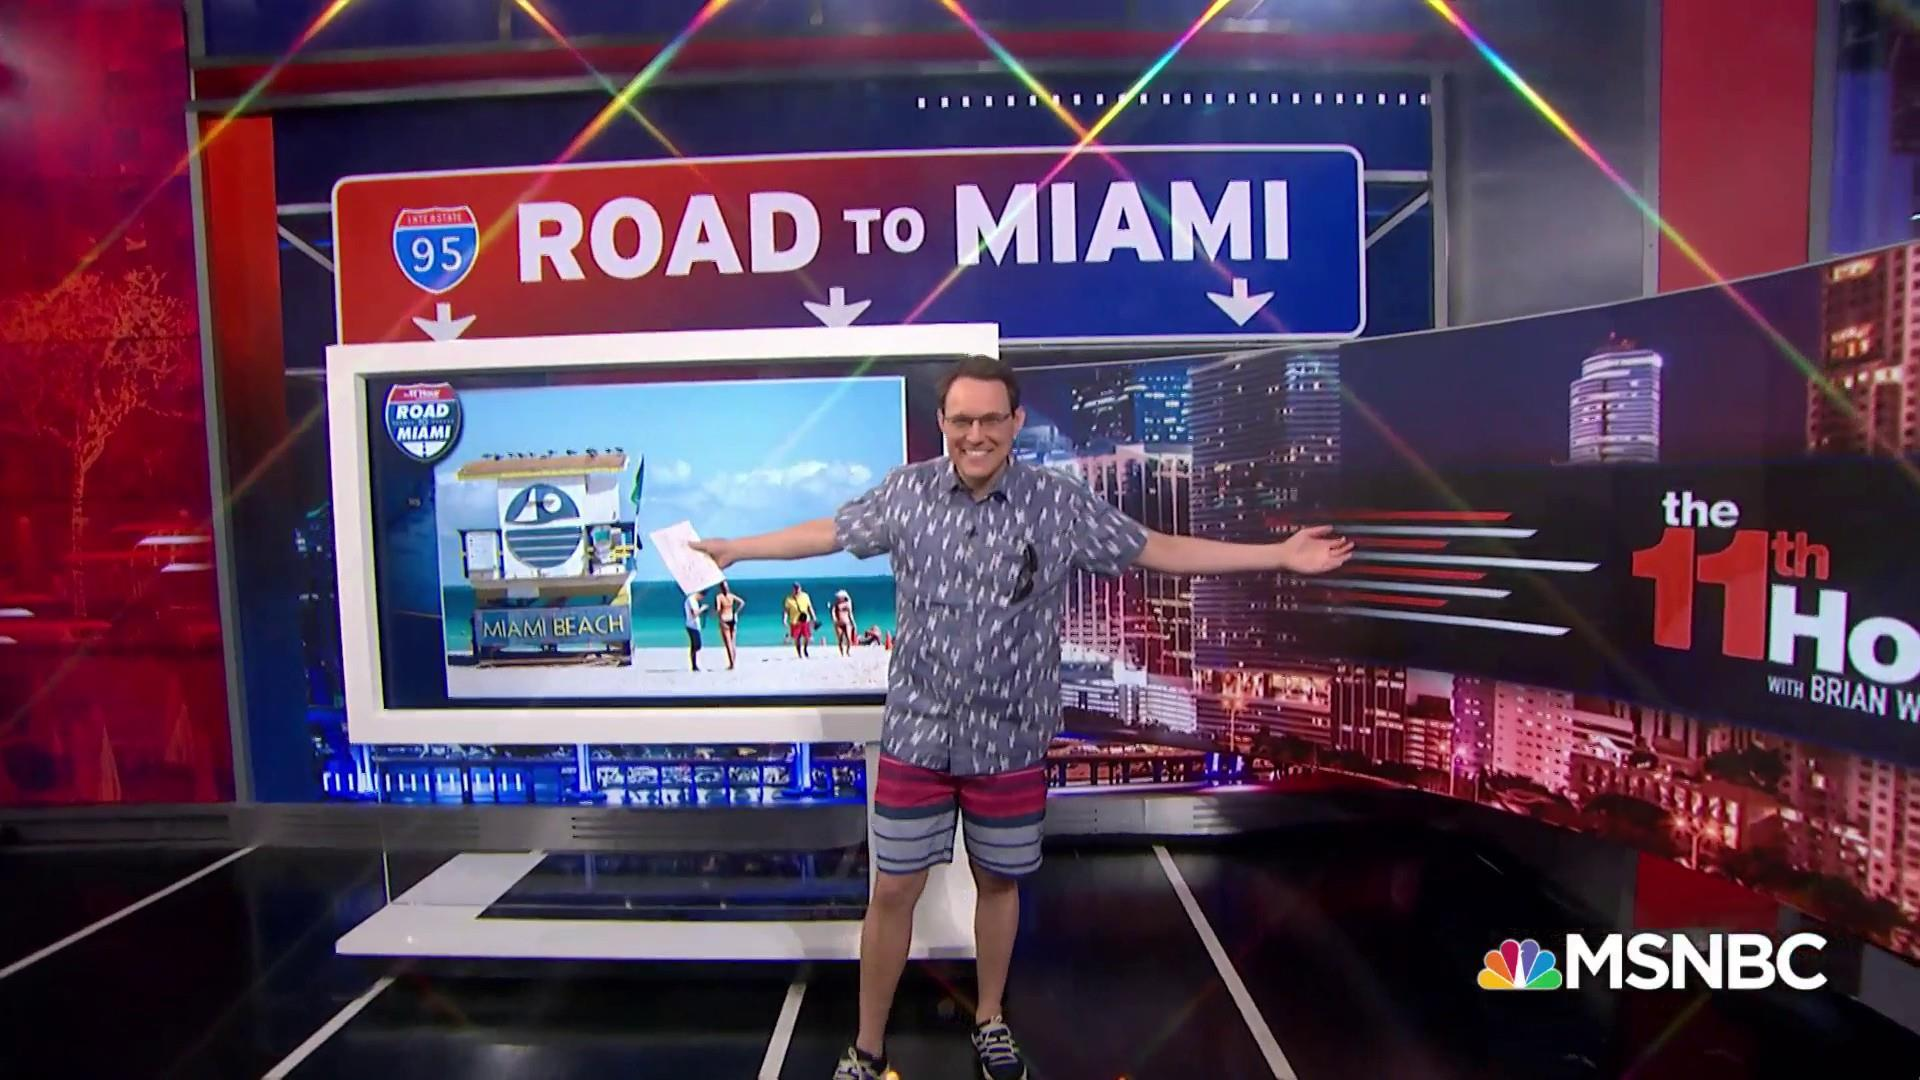 Road to Miami: Steve Kornacki on what you need to know about Florida before 2020